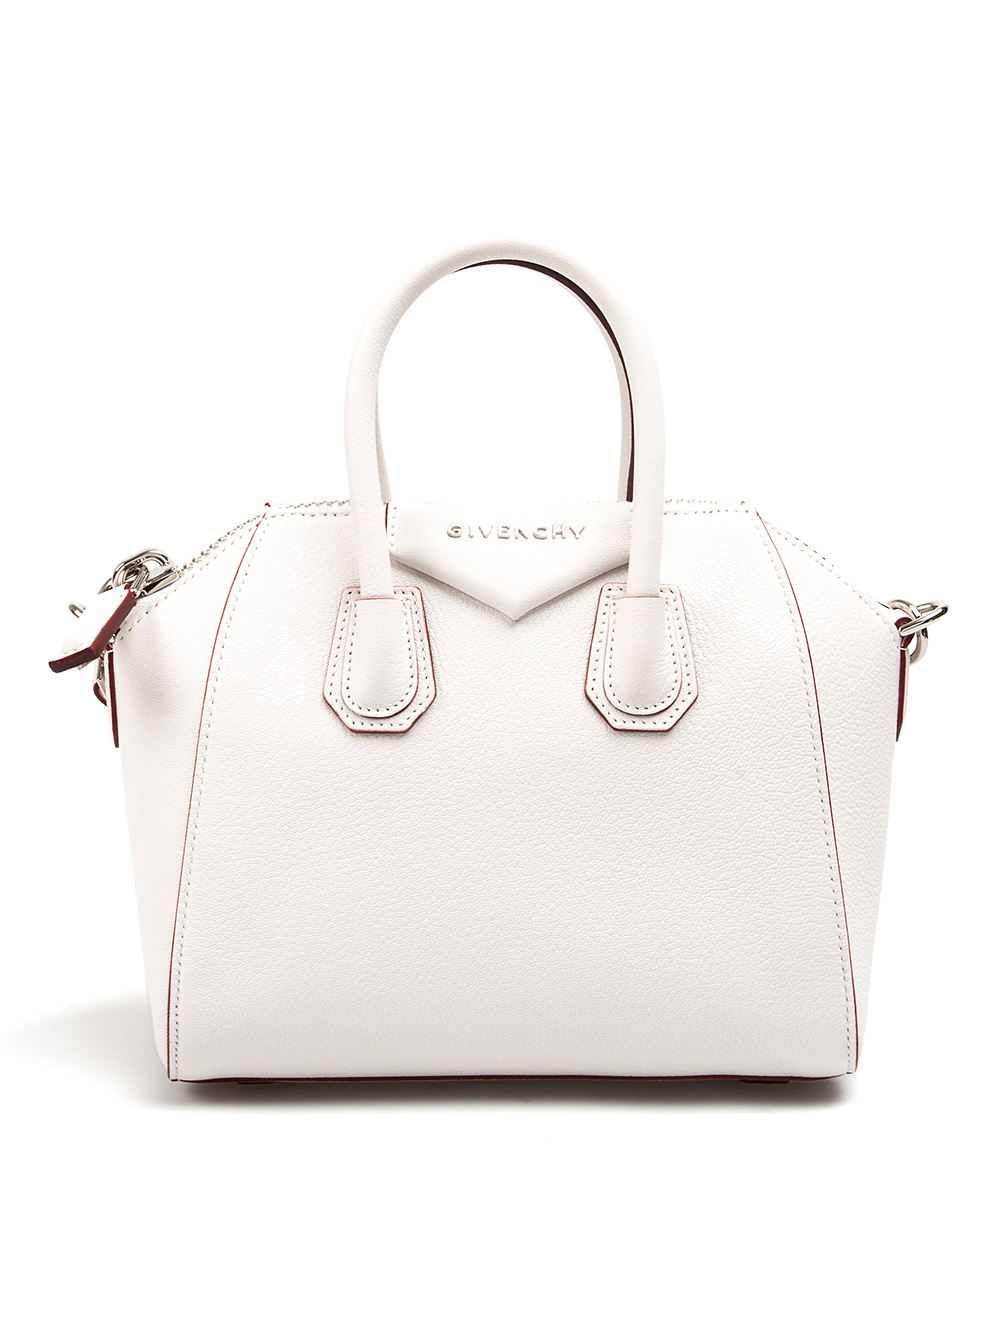 Lyst - Givenchy Antigona Mini Tote in White 95619abe5659f